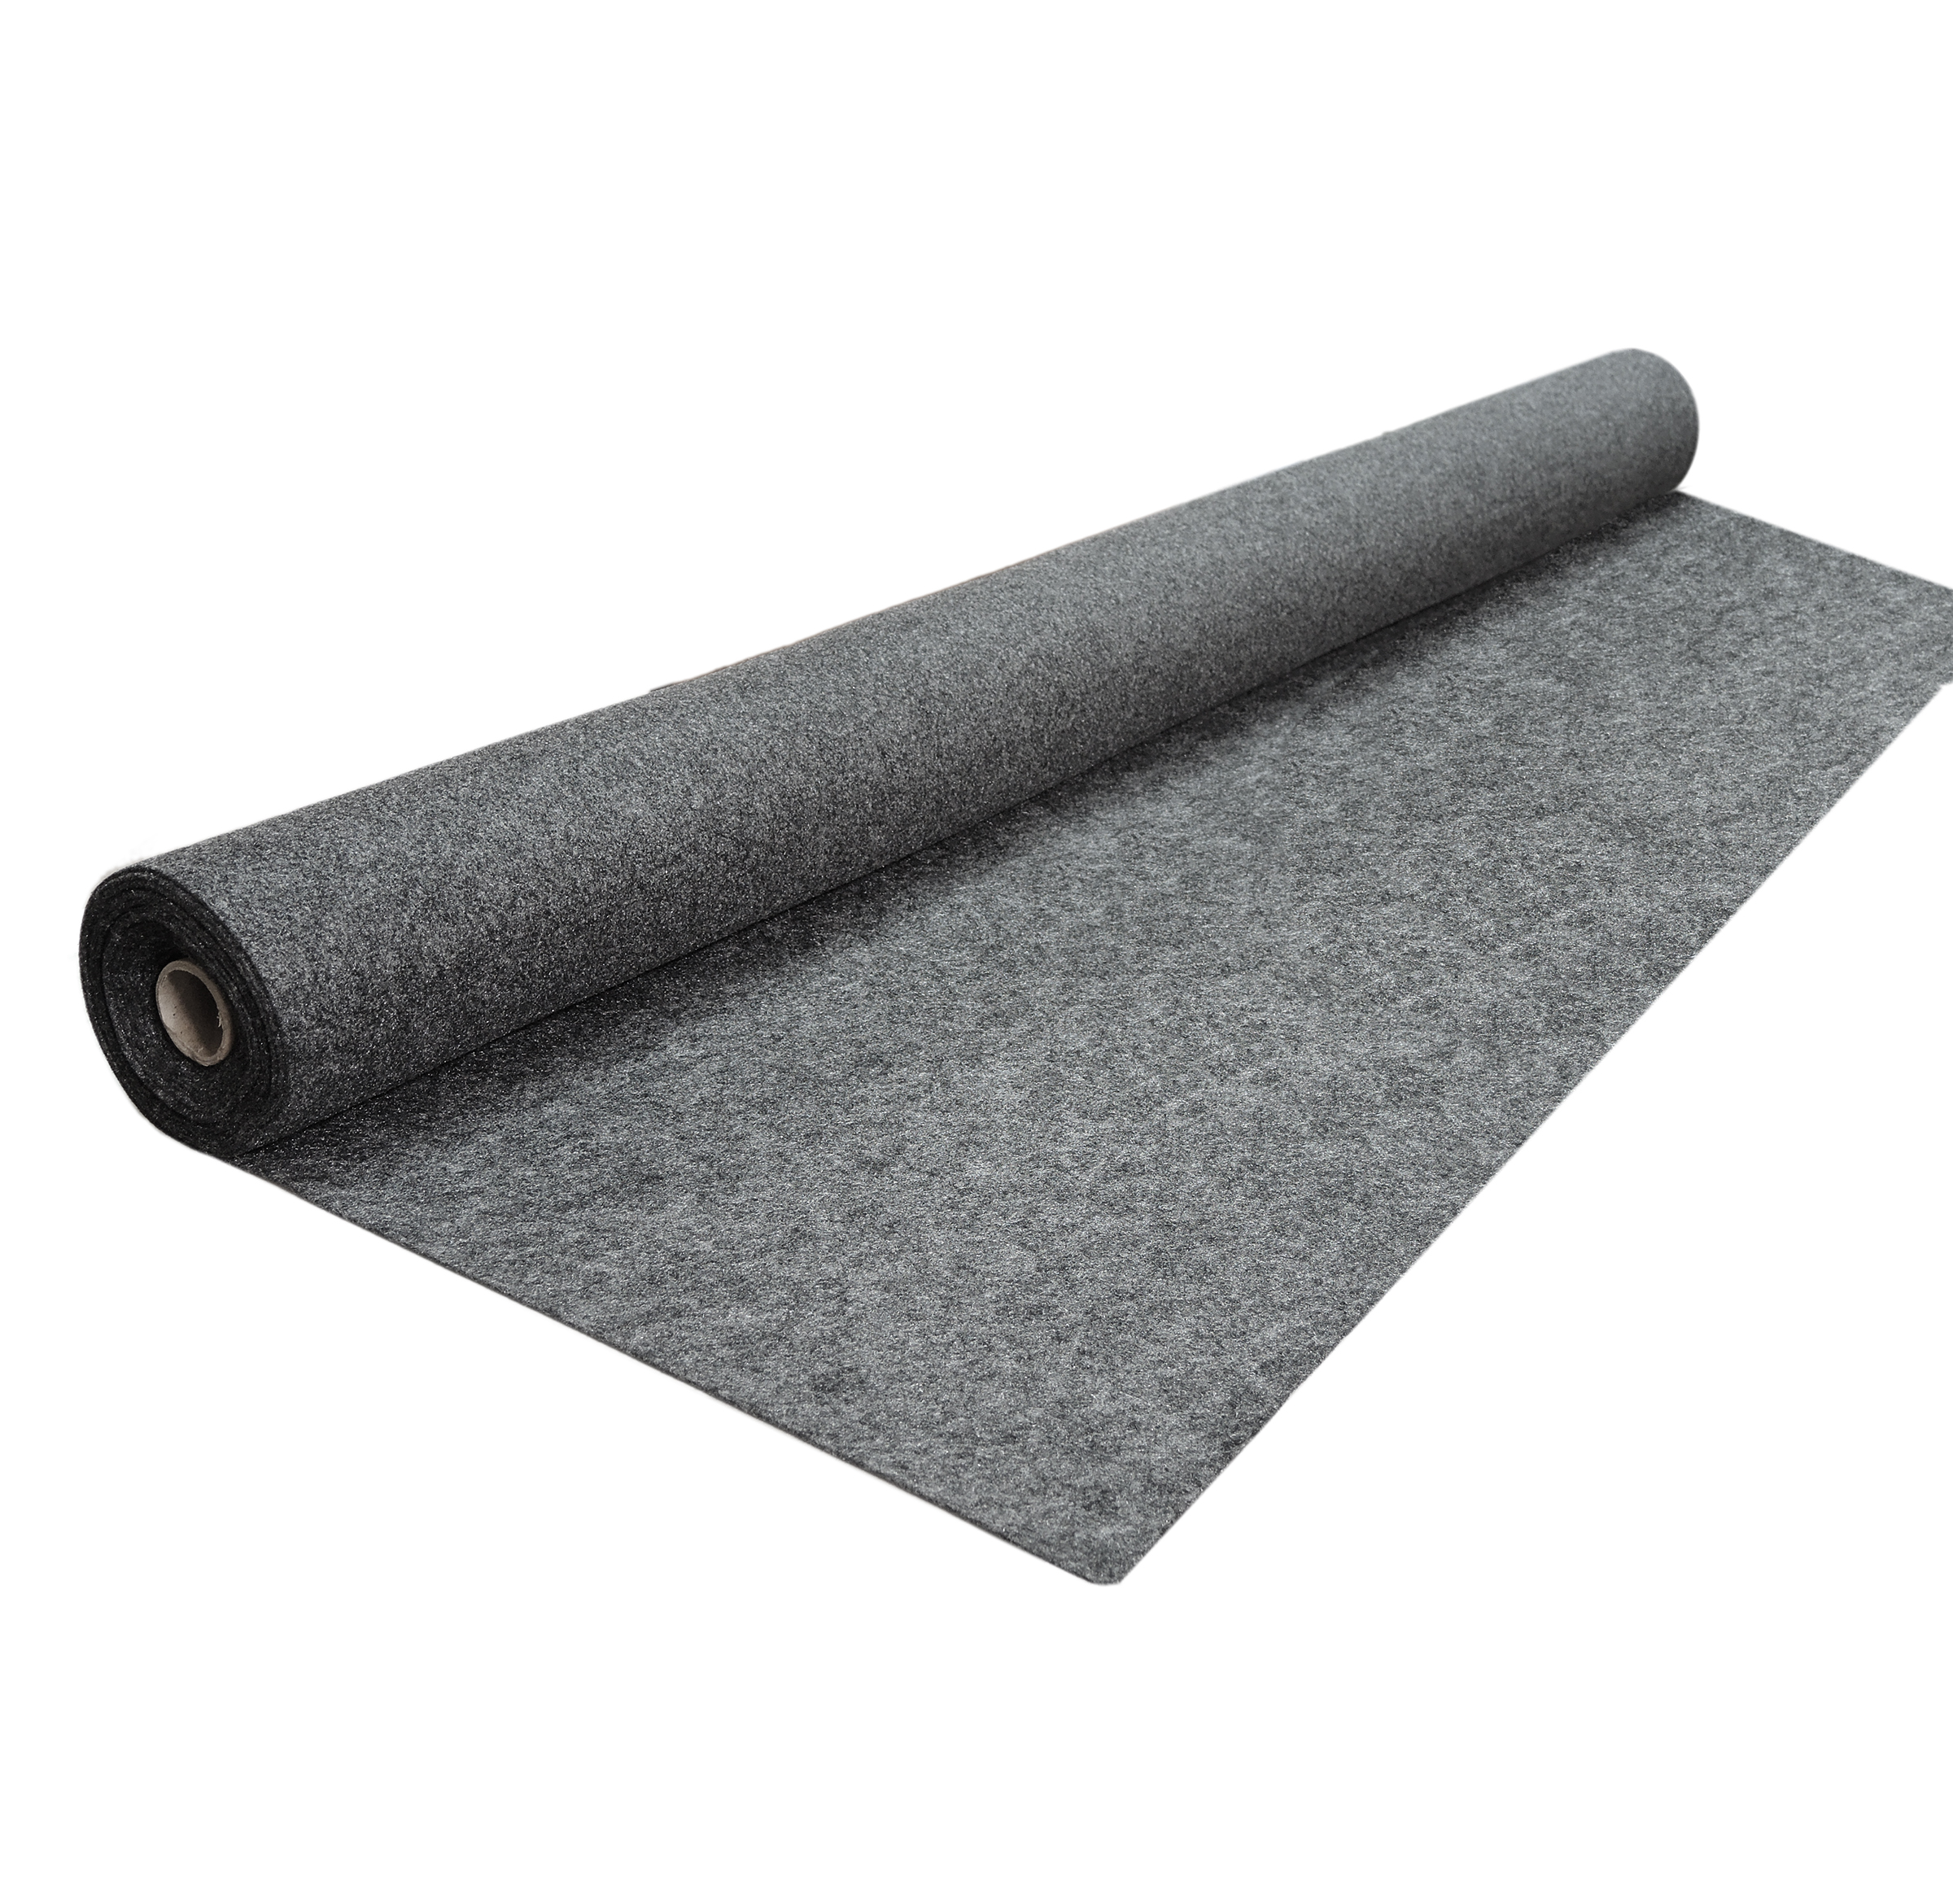 premium un backed durable car trunk liner carpet 54 x 15ft roll charcoal ebay. Black Bedroom Furniture Sets. Home Design Ideas